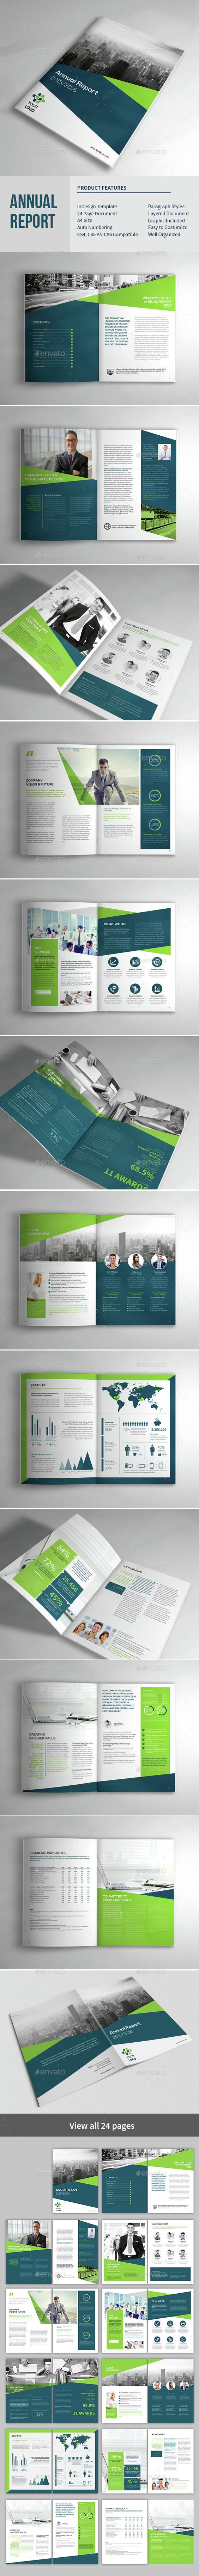 Annual Report Template InDesign INDD. Download here: http://graphicriver.net/item/annual-report/15125546?ref=ksioks